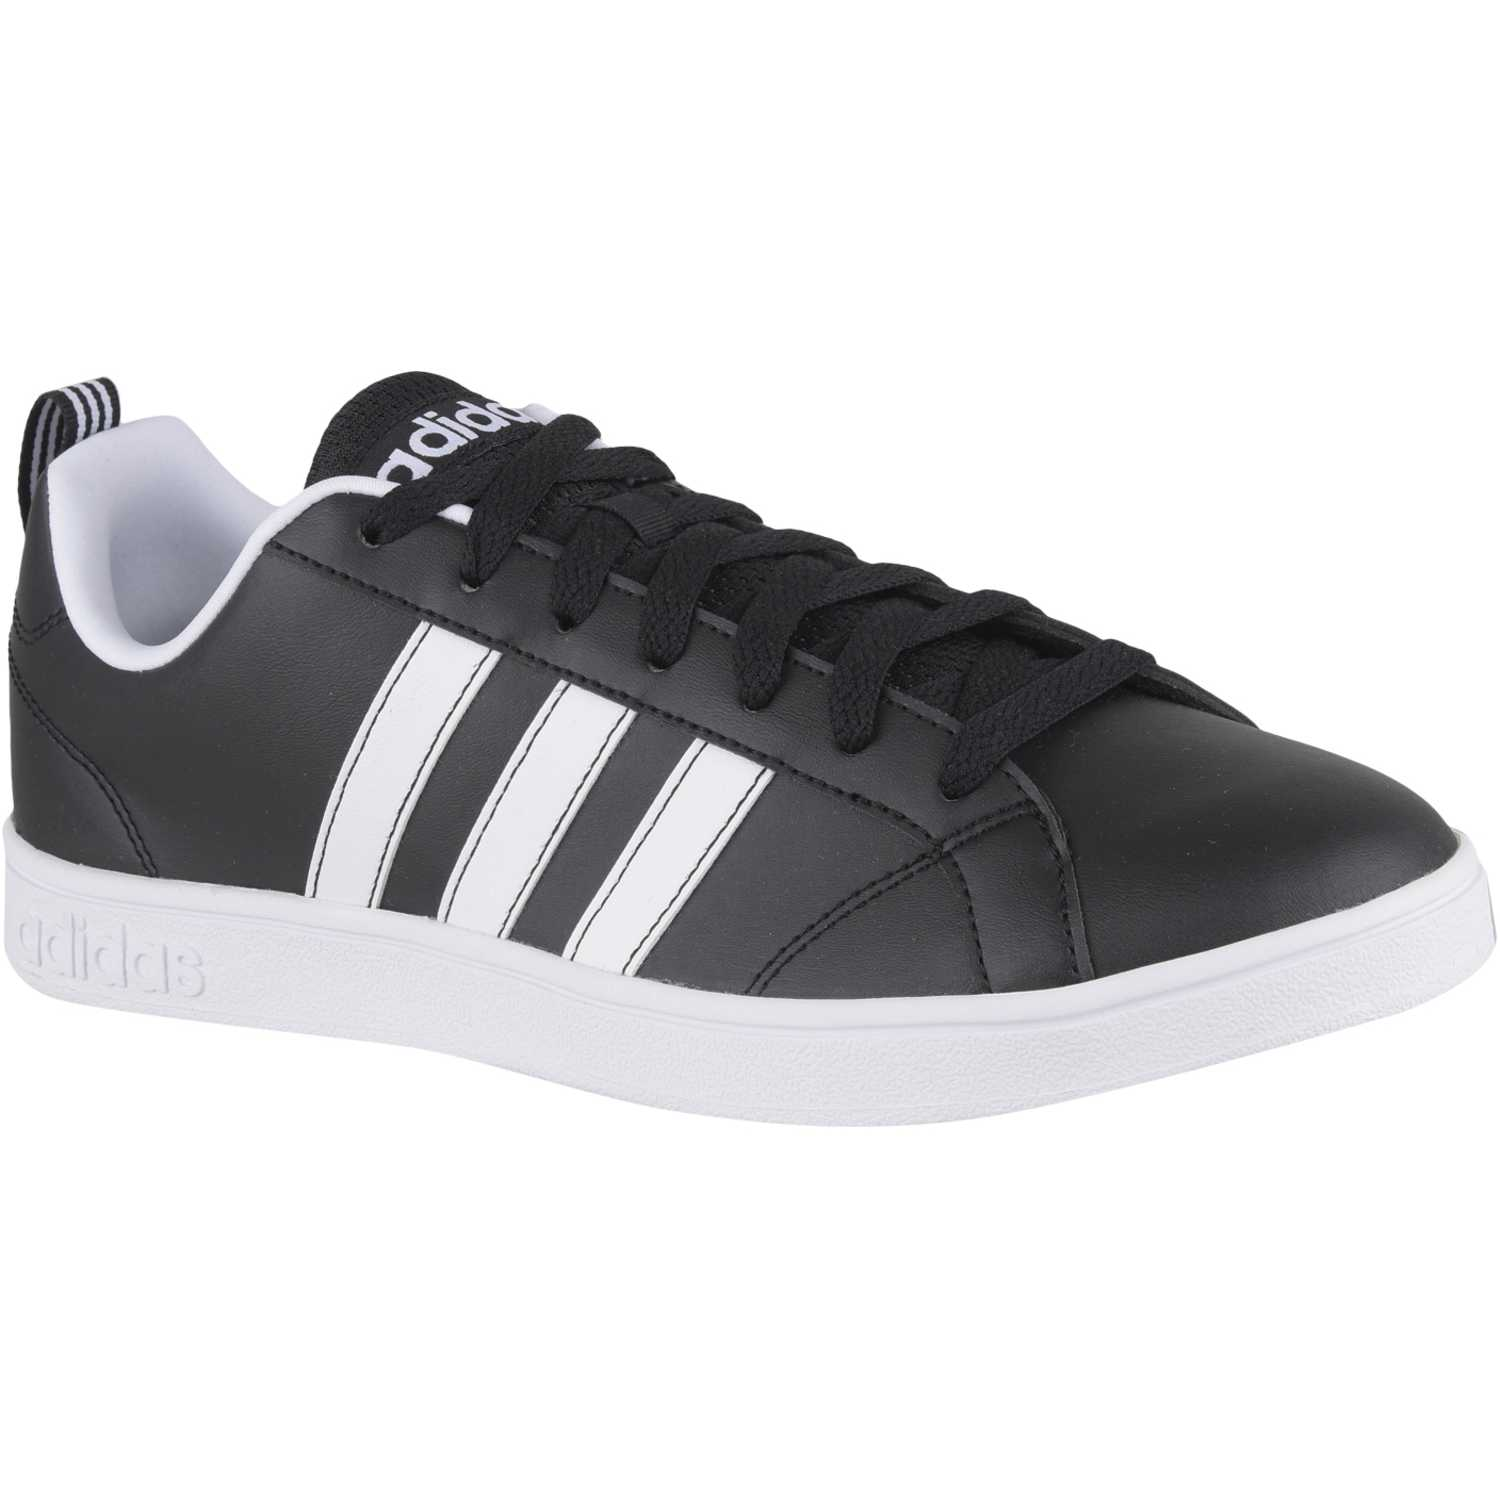 871d9693d7 adidas NEO Negro   blanco de Hombre modelo vs advantage Walking Casual  Zapatillas Urban Deportivo